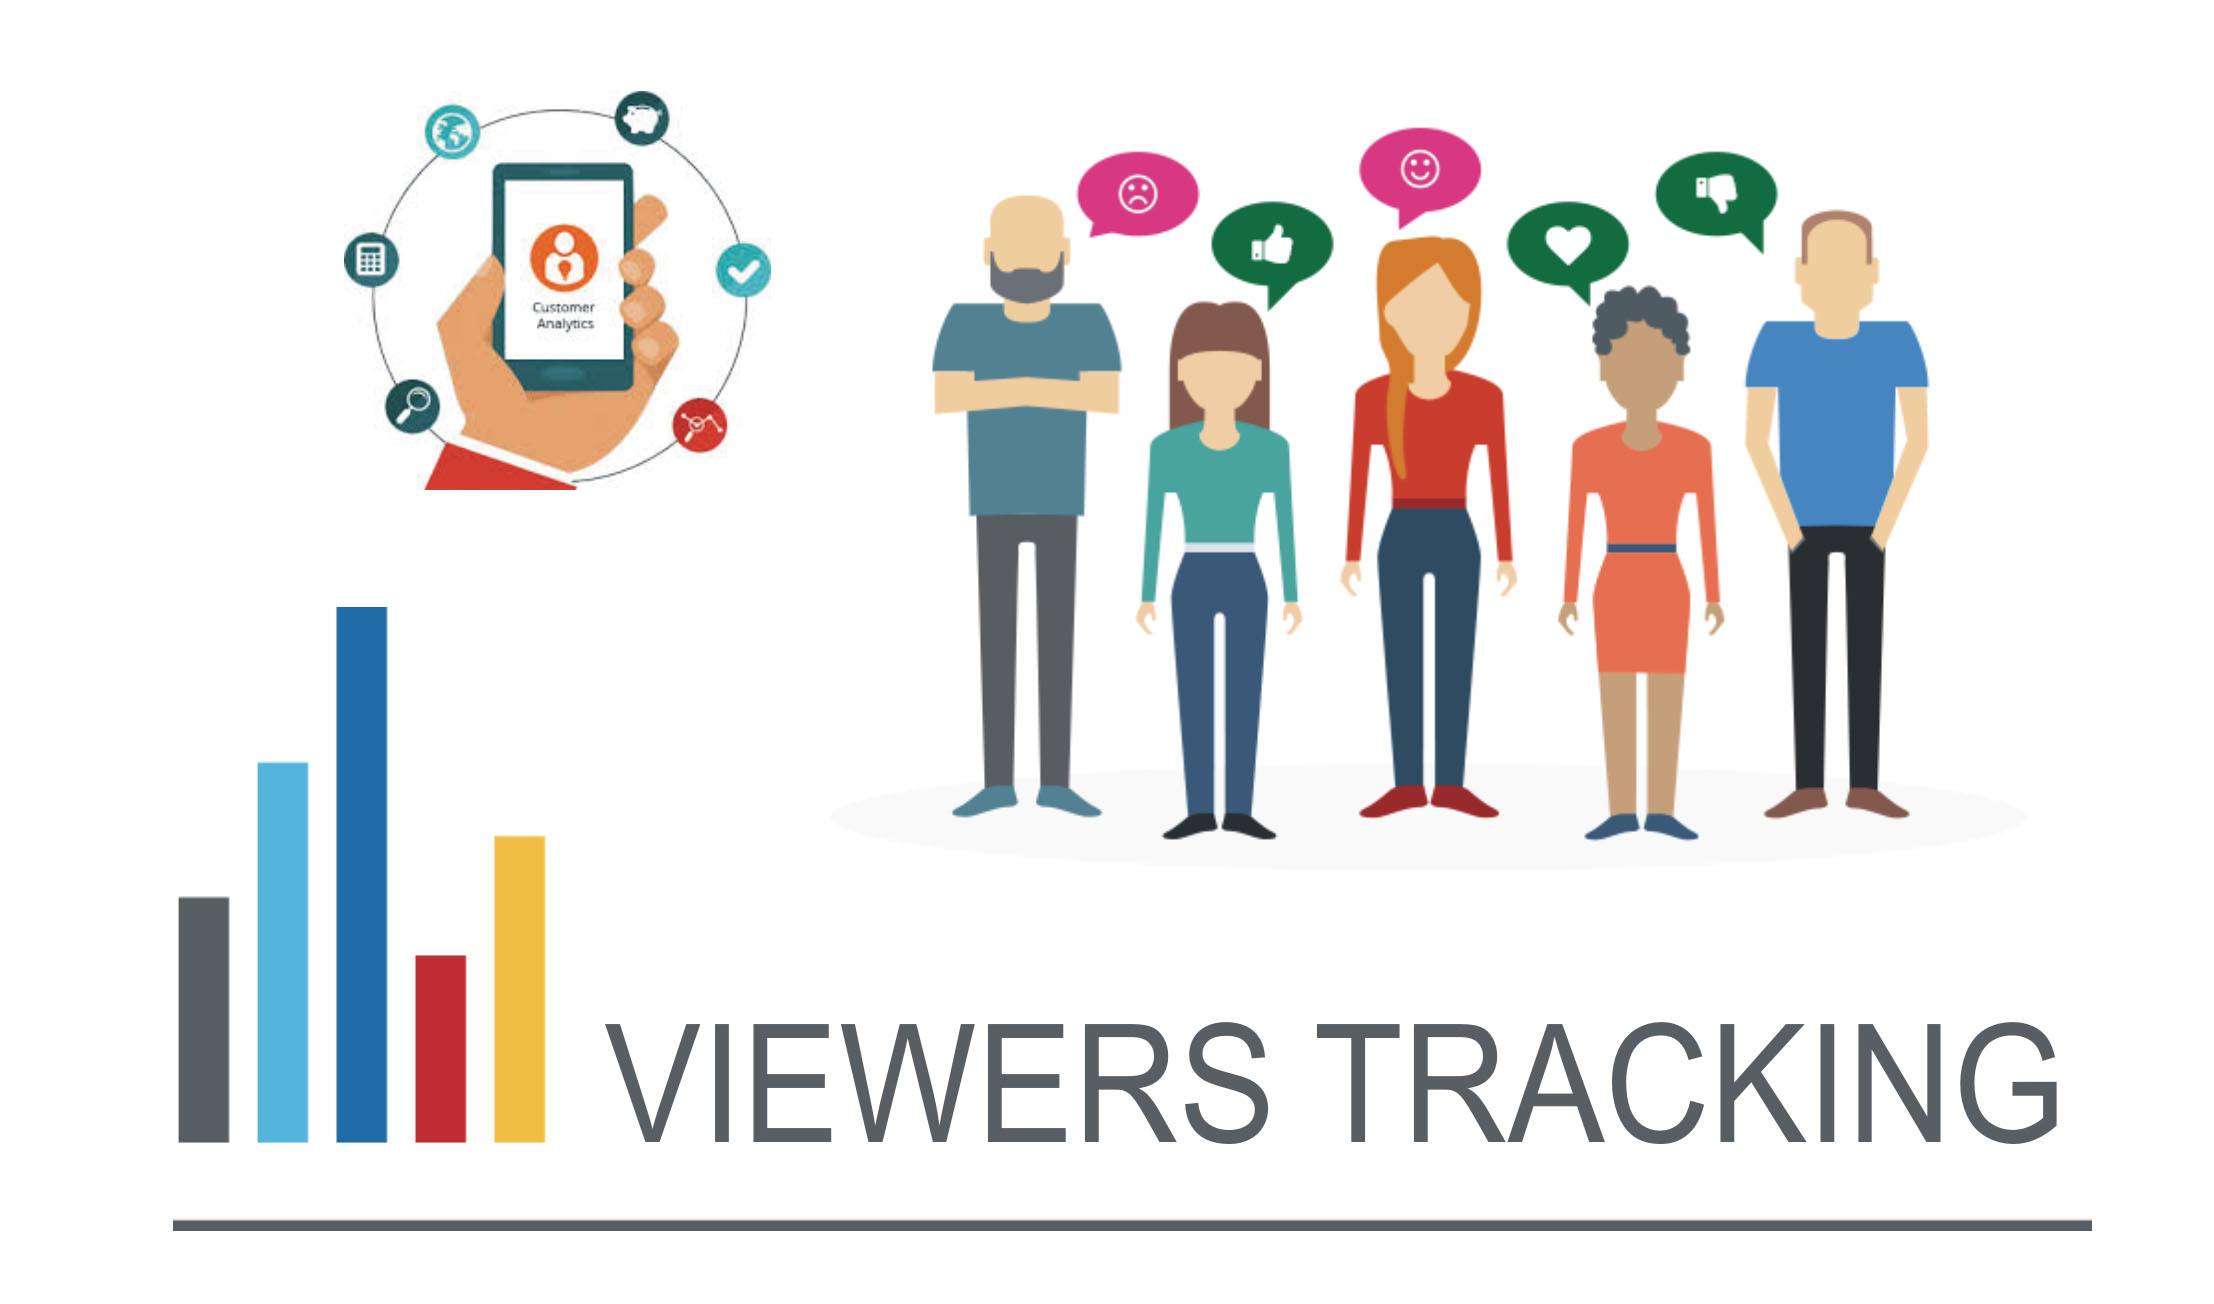 viewers 1 - Viewers Tracking